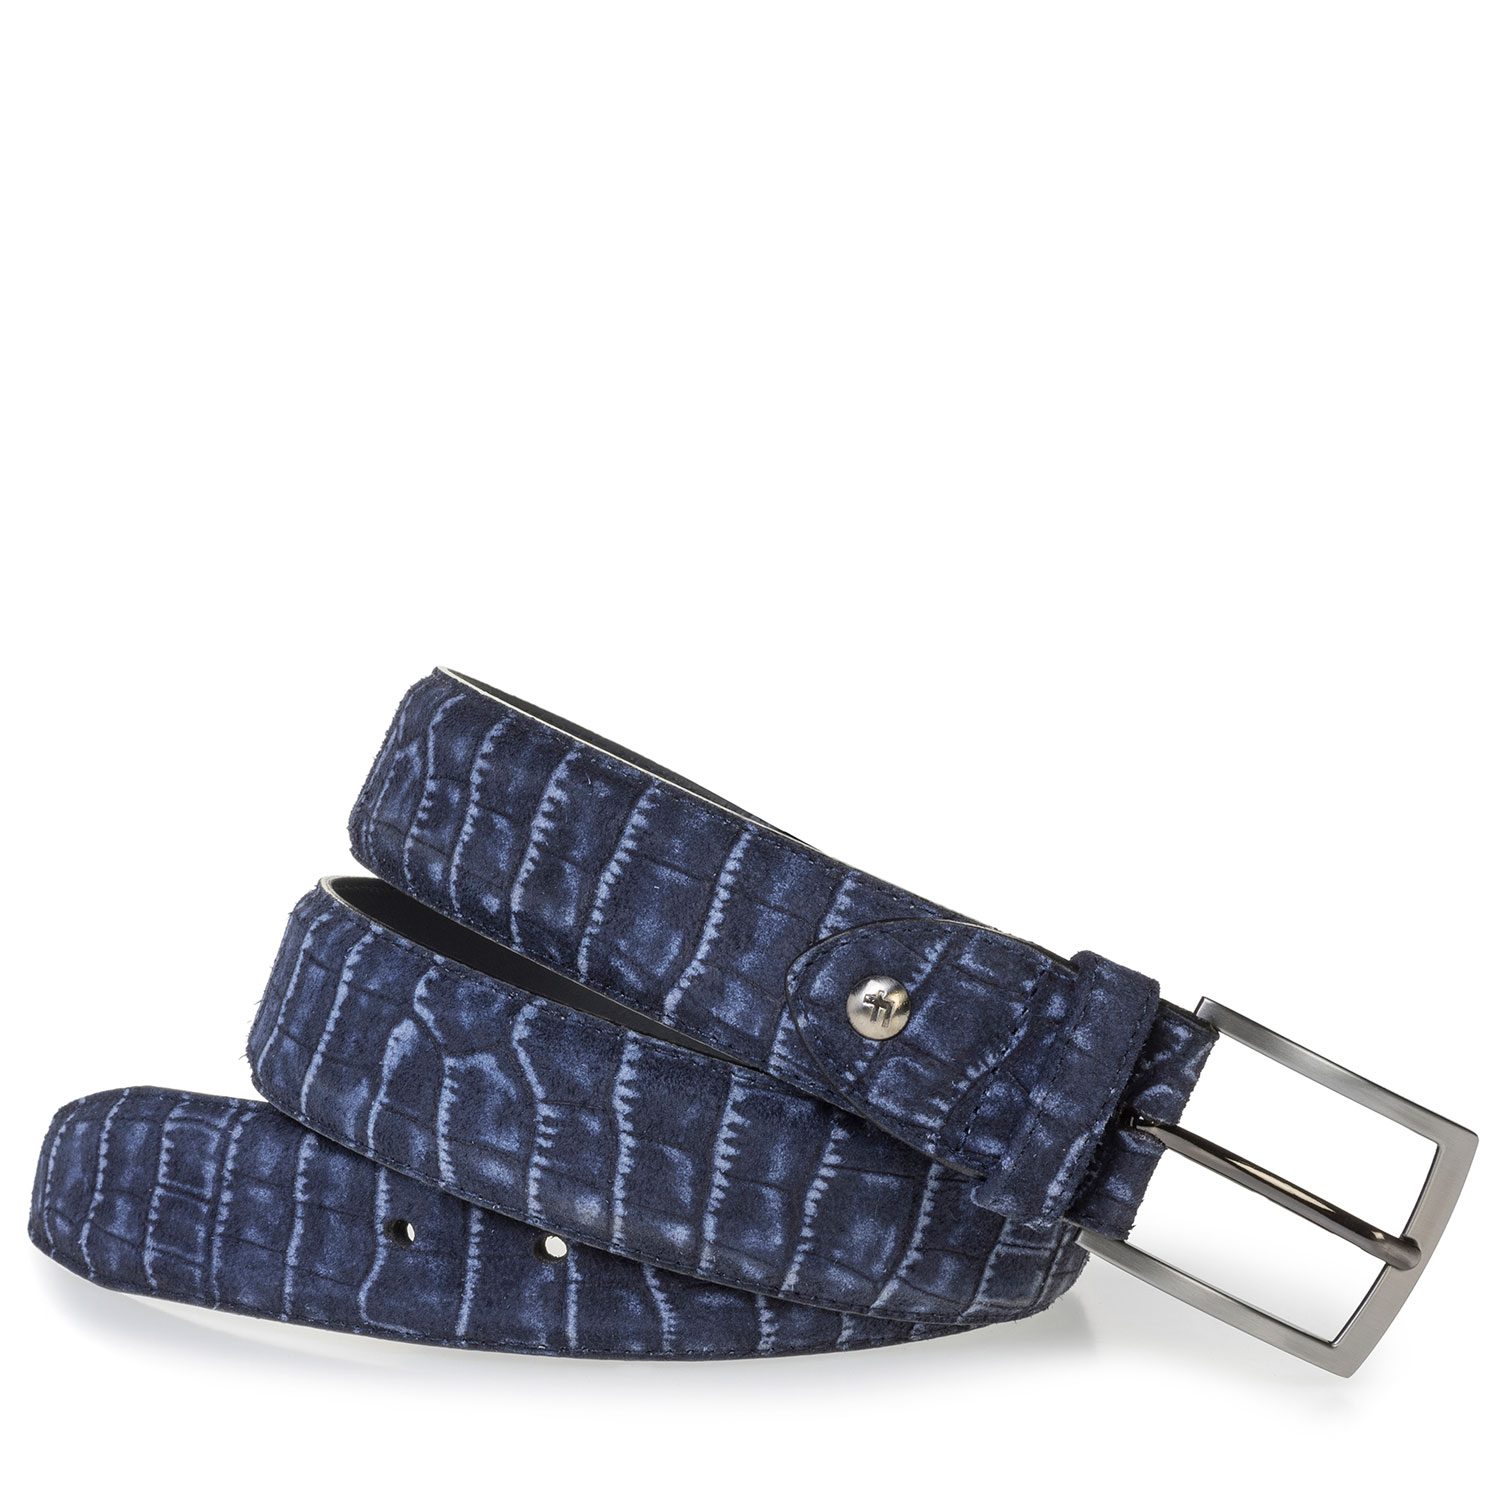 75201/80 - Blue suede leather belt with croco print